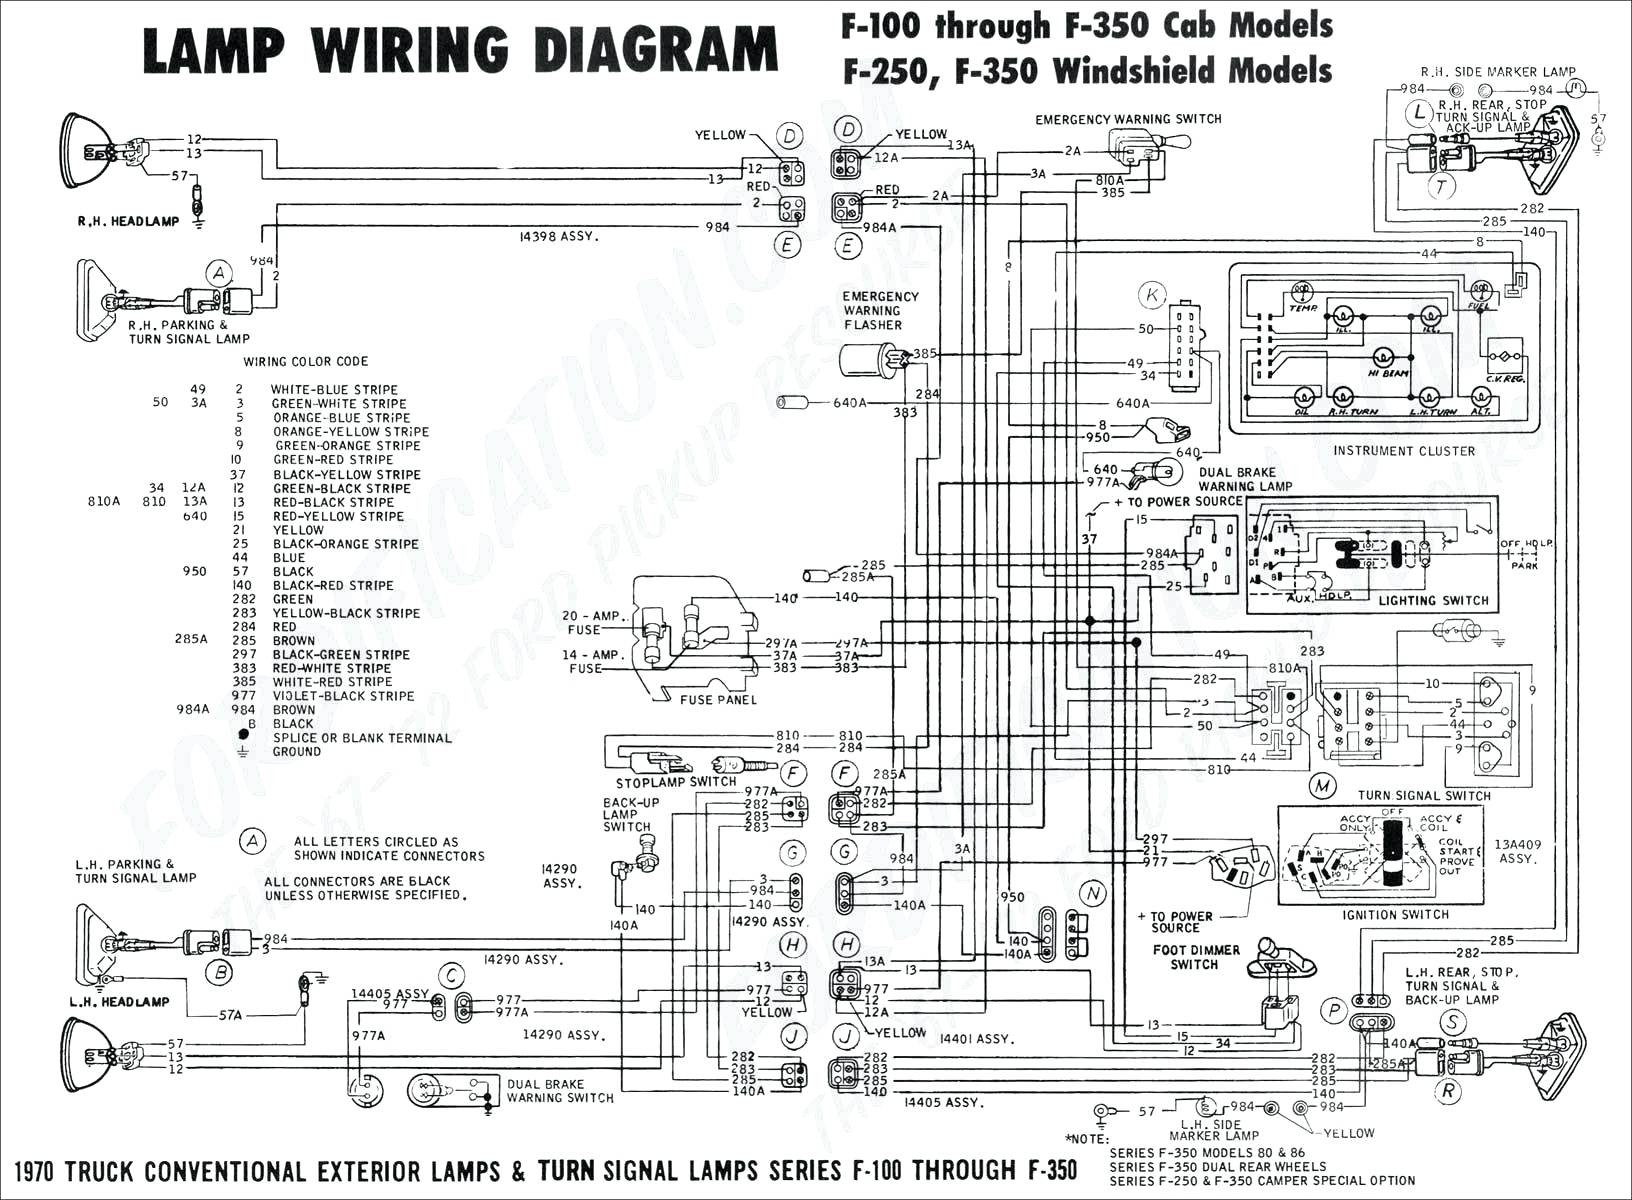 ford f350 trailer wiring diagram Download-Trailer Wiring Diagram Ford Ranger Inspirationa 2000 Ford F250 Trailer Wiring Harness Diagram Gallery 5-s